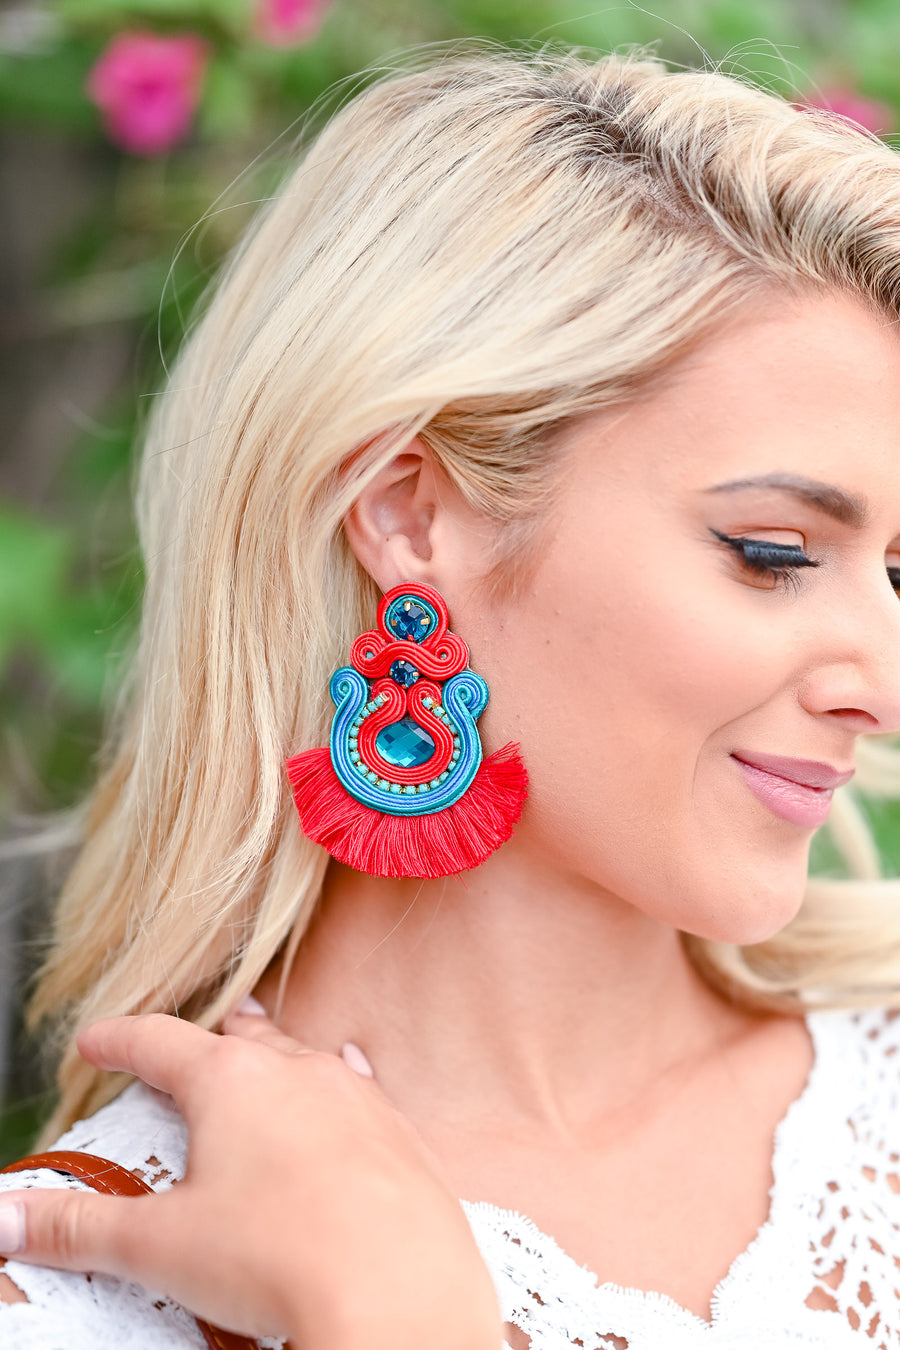 I Hope You Dance Jewel Earrings - Red womens trendy beaded red blue earrings closet candy side